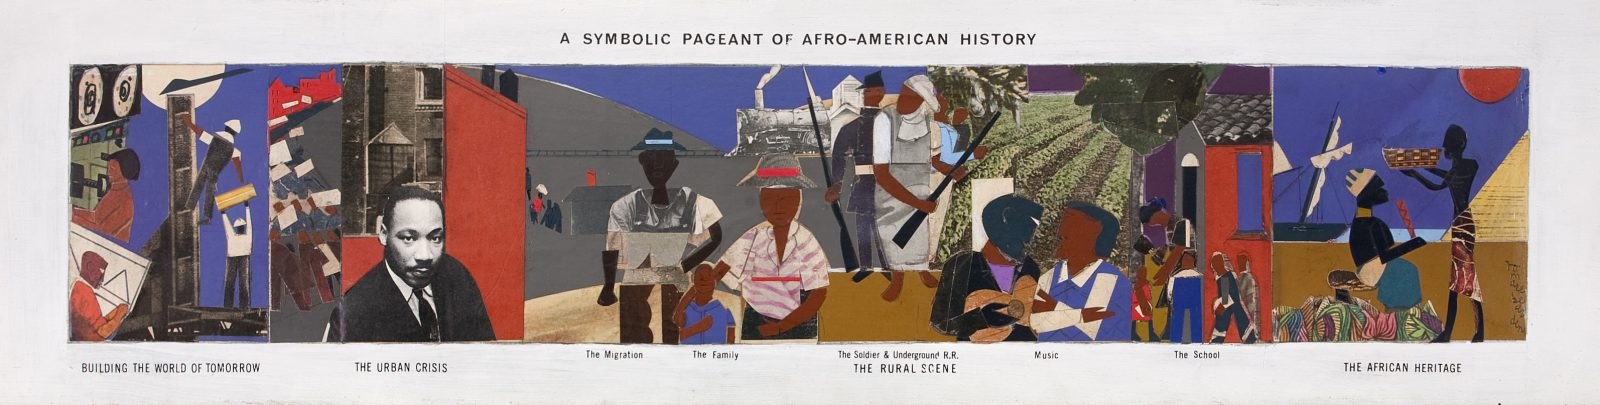 This work by Romare Bearden condenses centuries of history onto a small panel with several scenes and characters